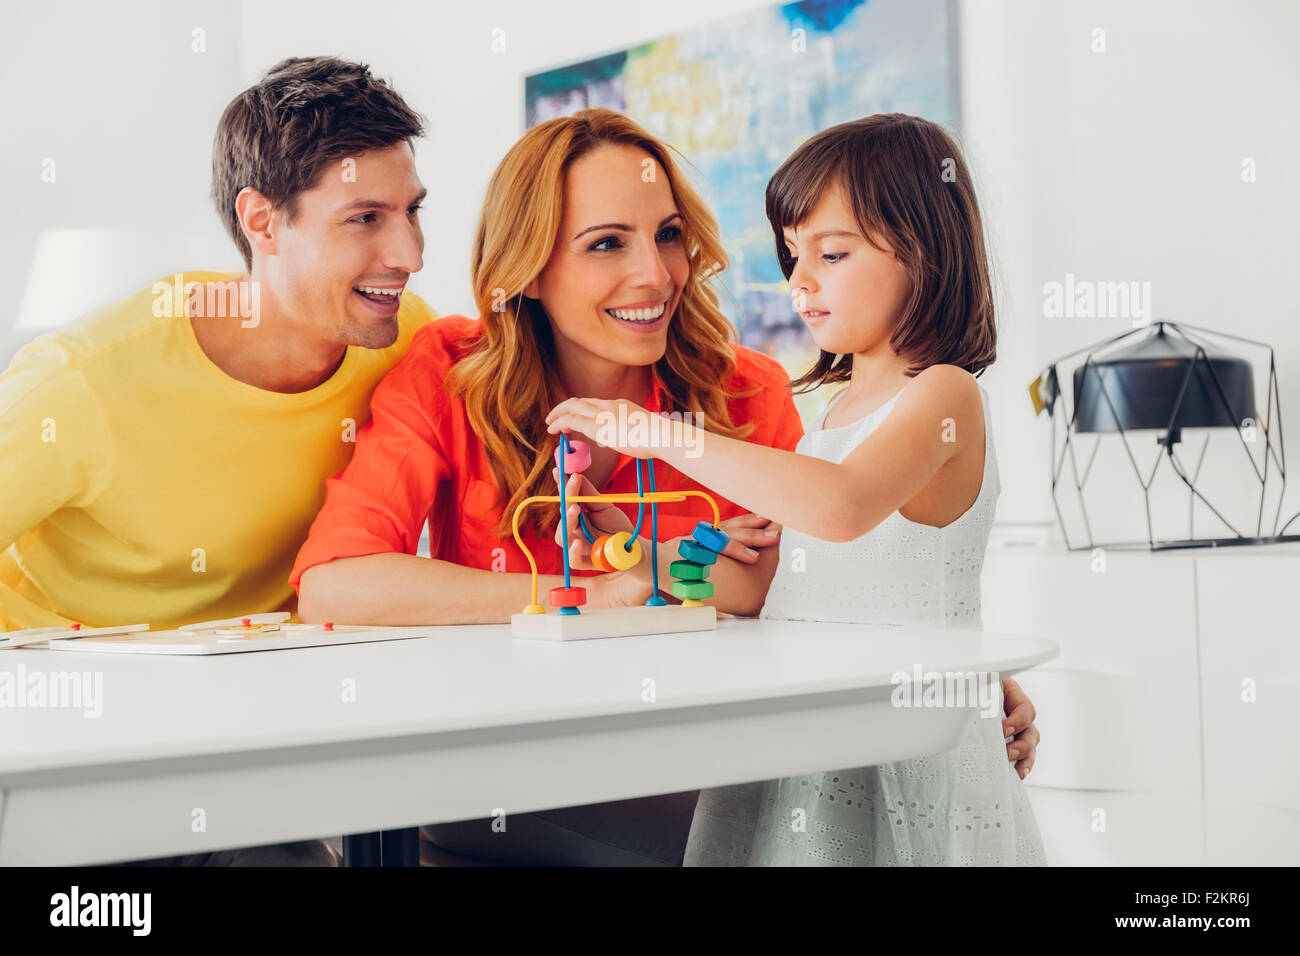 Parents with daughter playing with toy on table at home - Stock Image